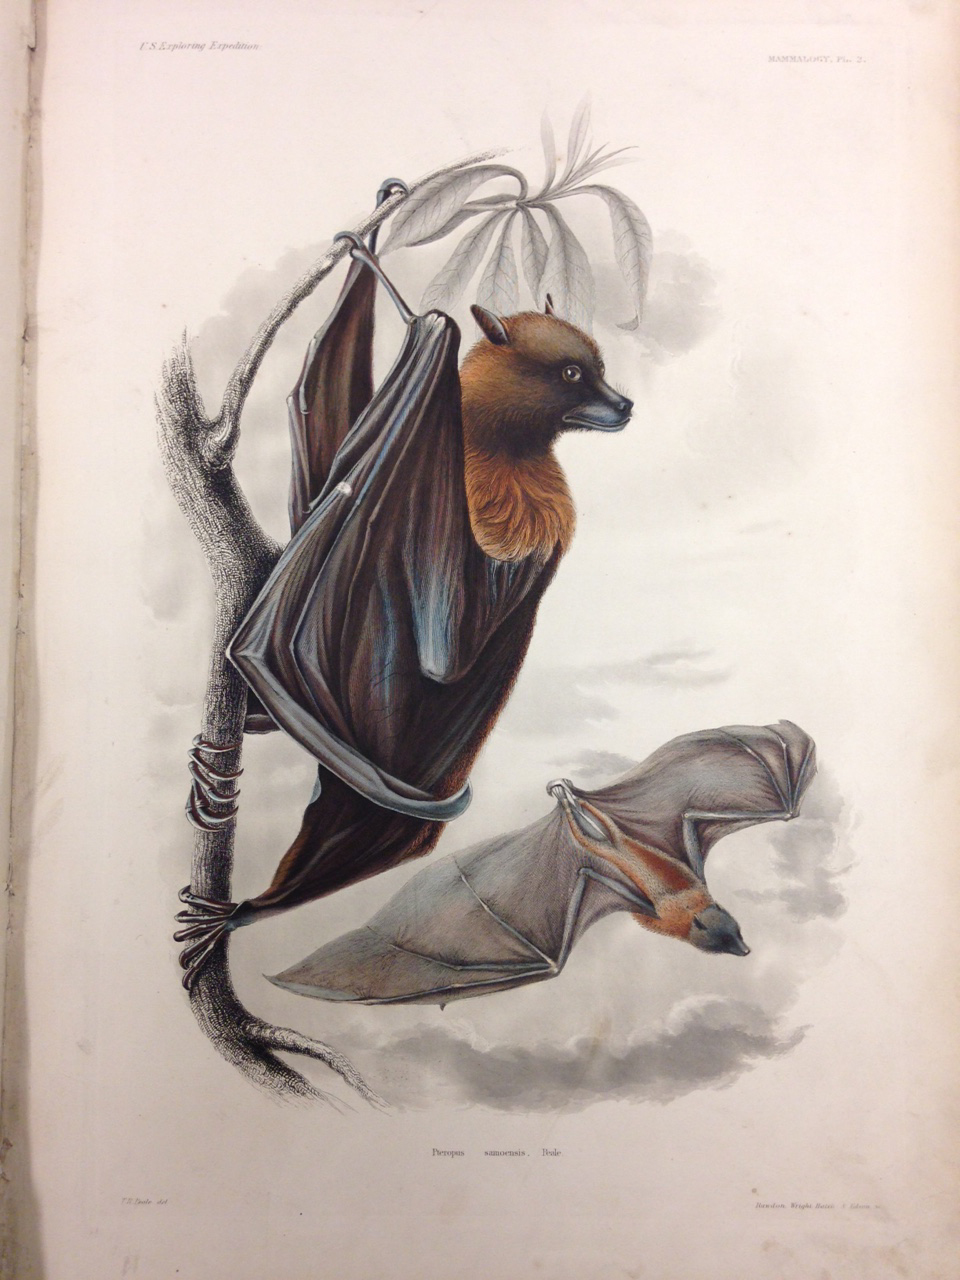 Mammalogy, Plate 2: Pteropus samoensis (Samoan Flying Fox). – They might look scary, but you can sleep easy knowing these bats are vegetarians!